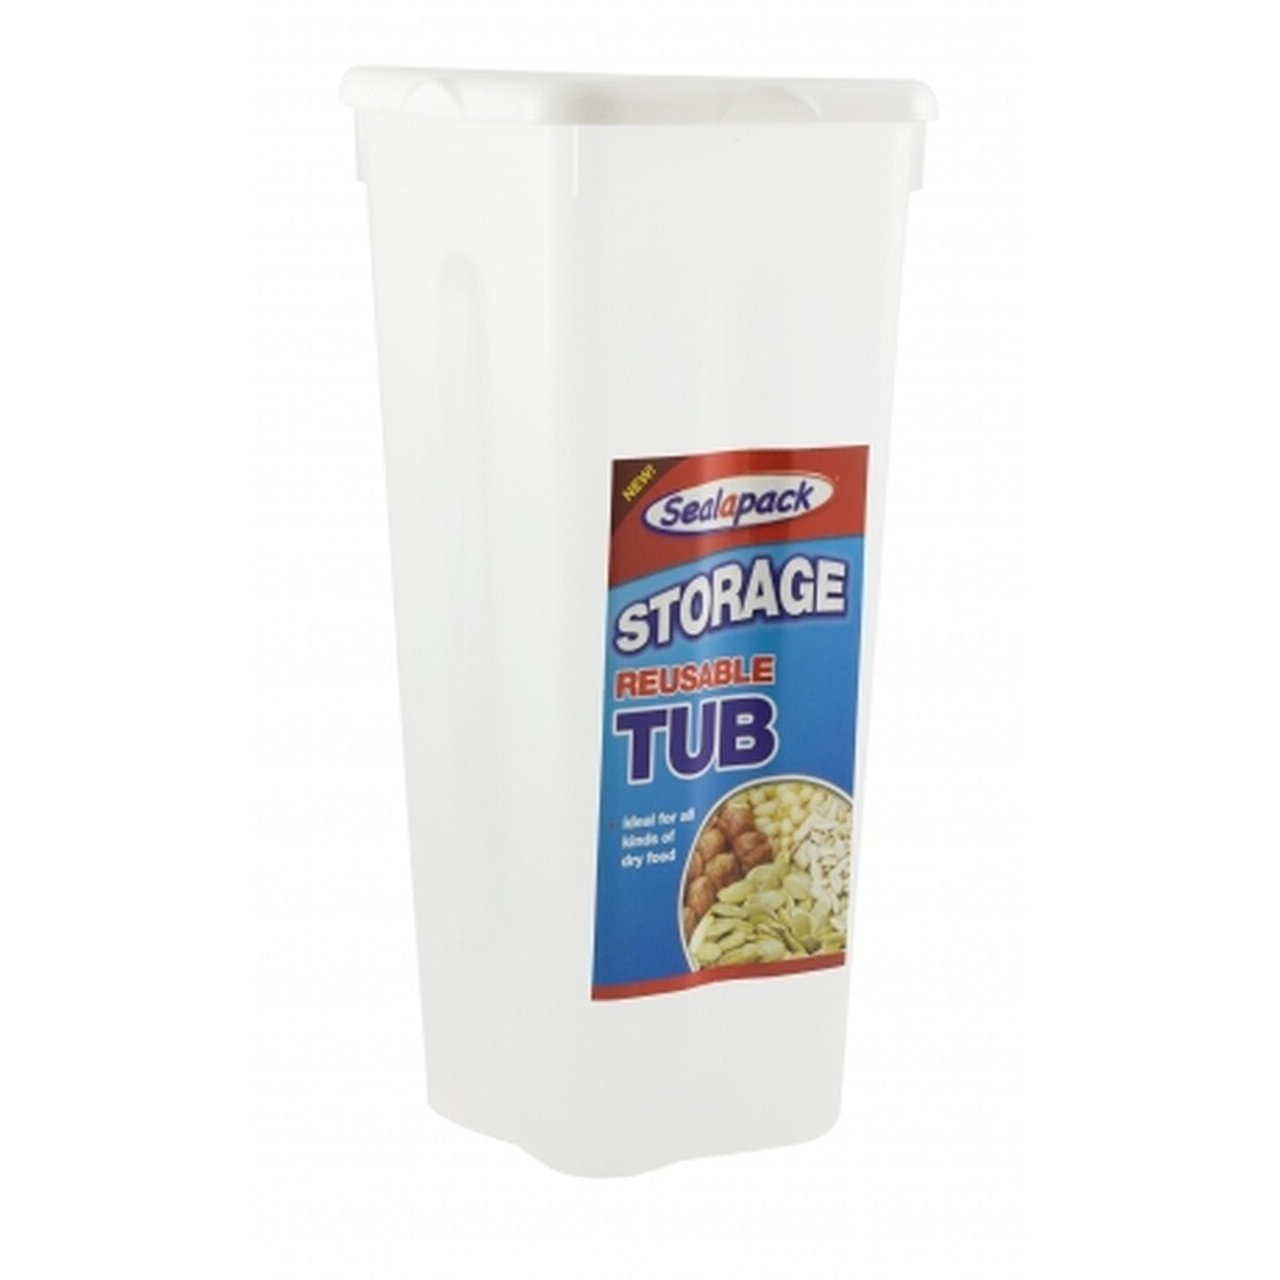 Storage Container & Lid - 2.7 Litre